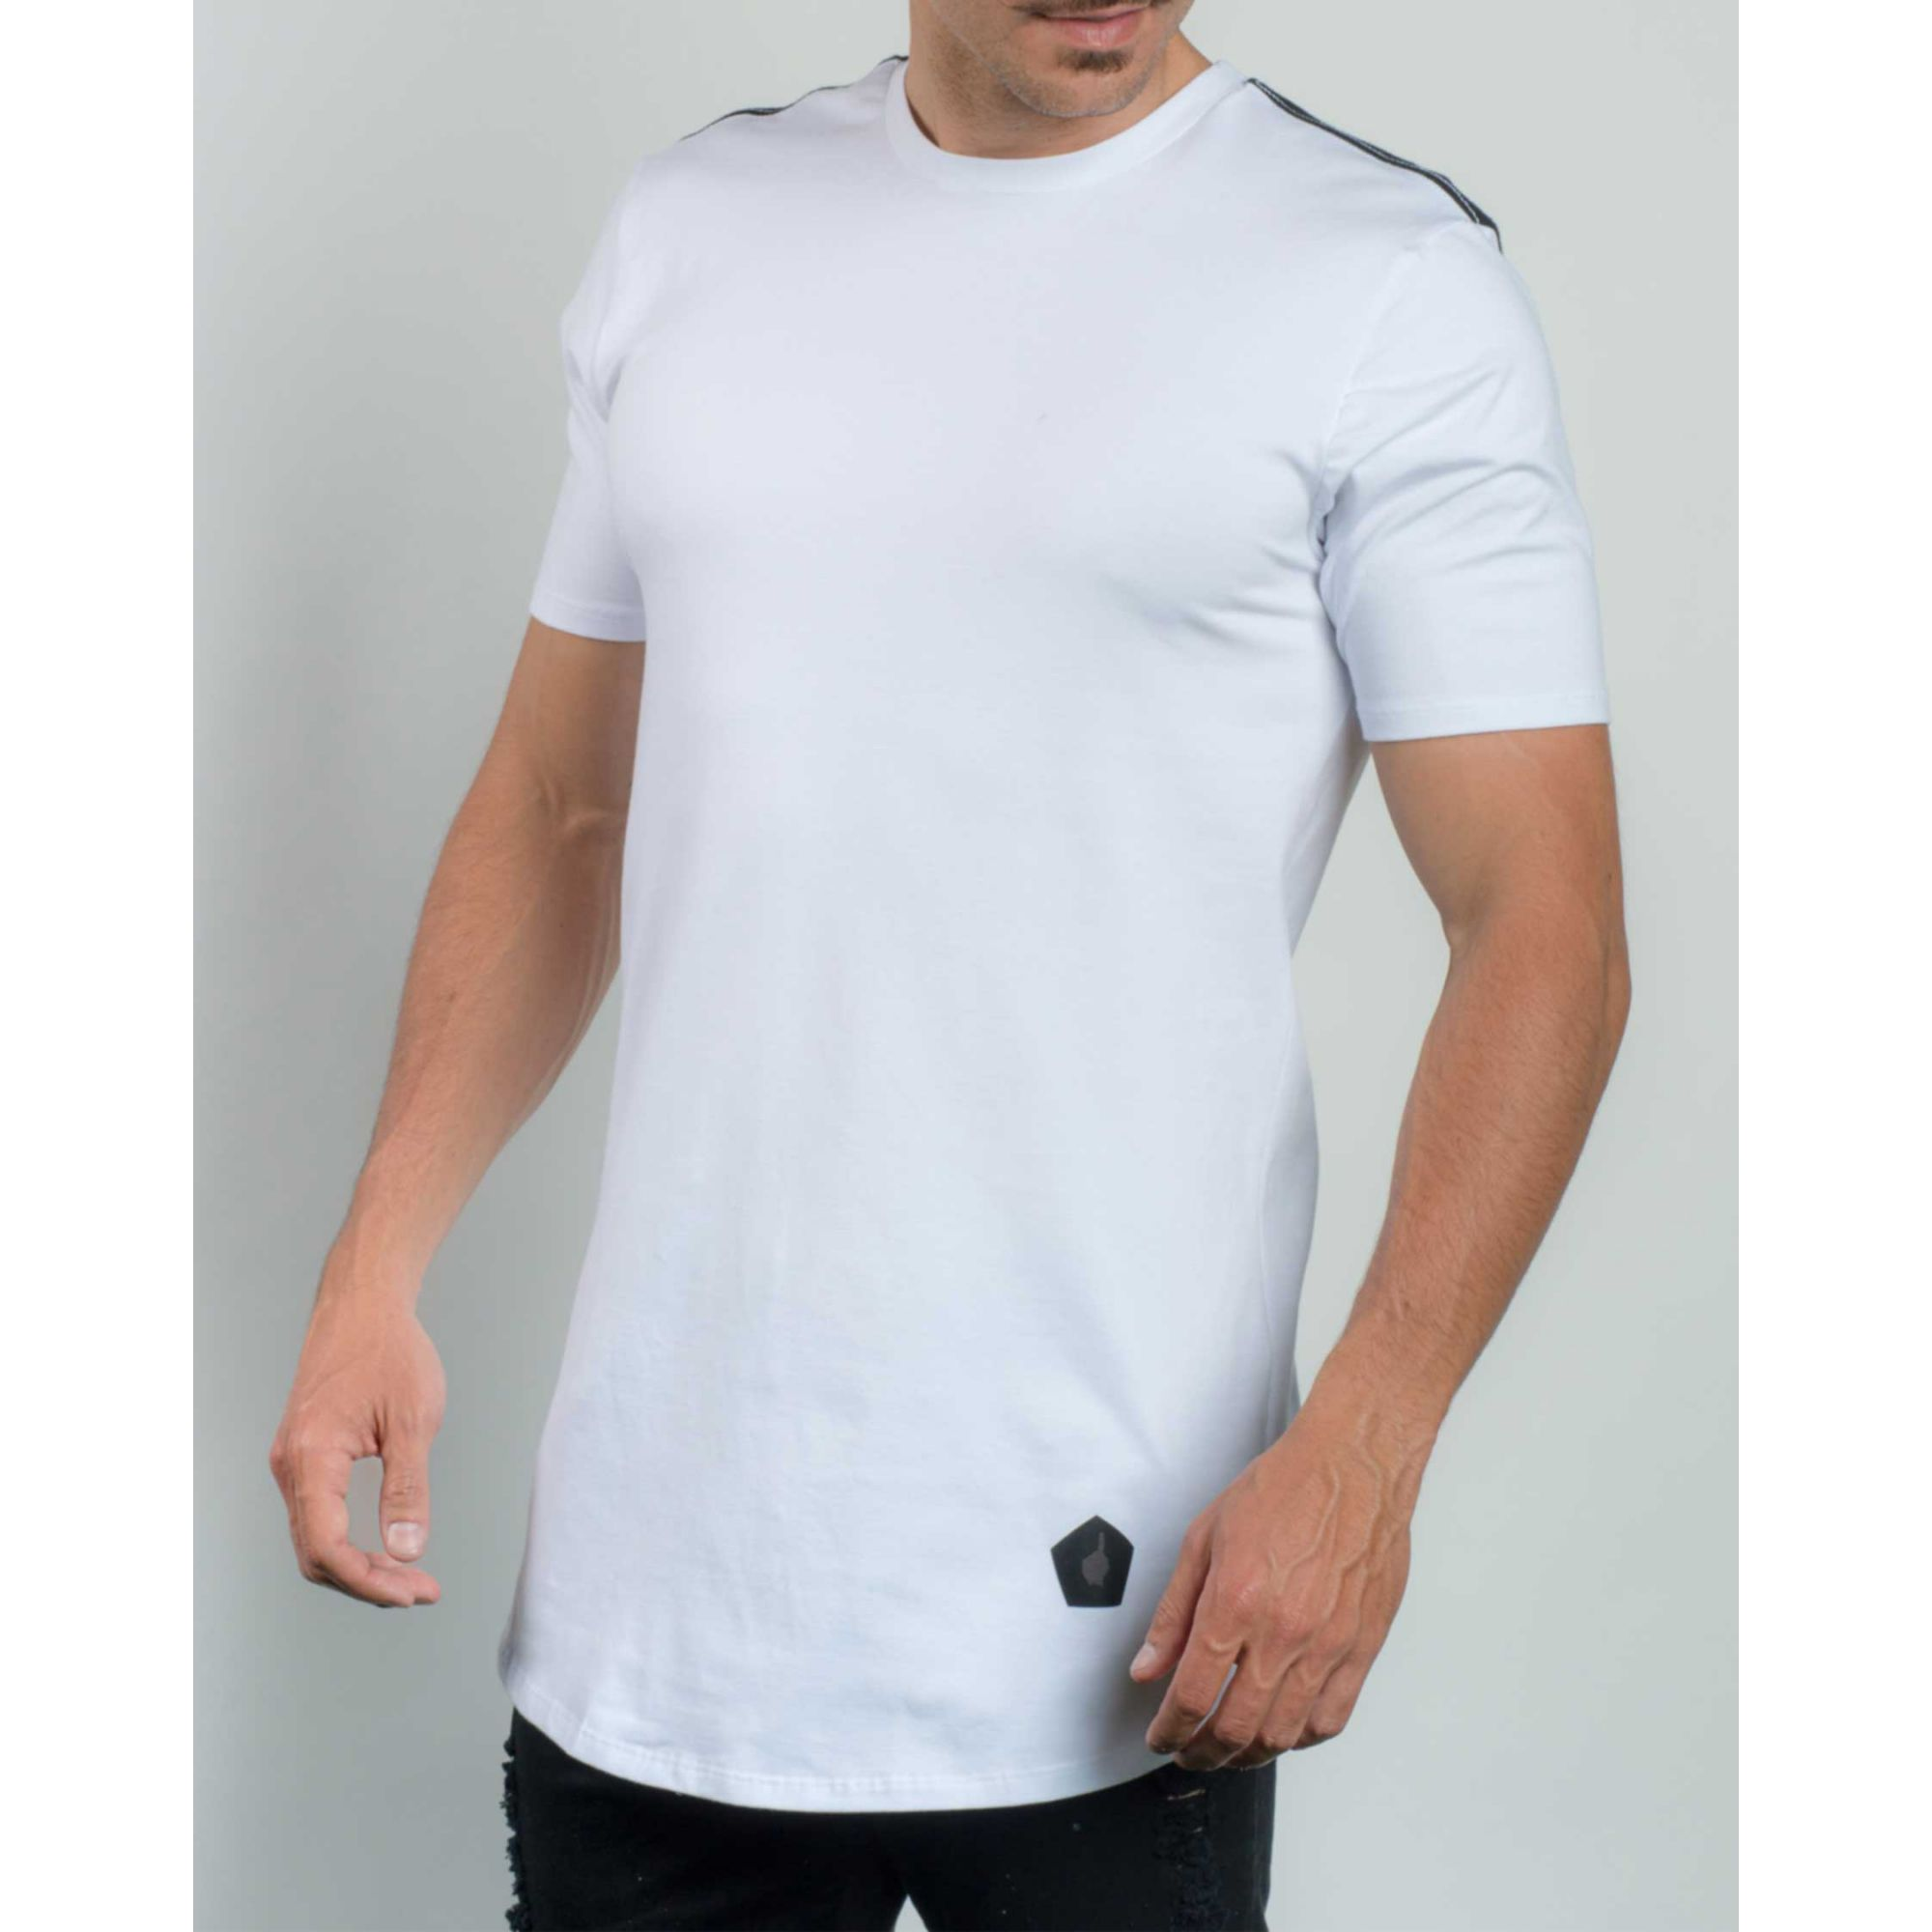 Camiseta Buh Back Mesh White & Black